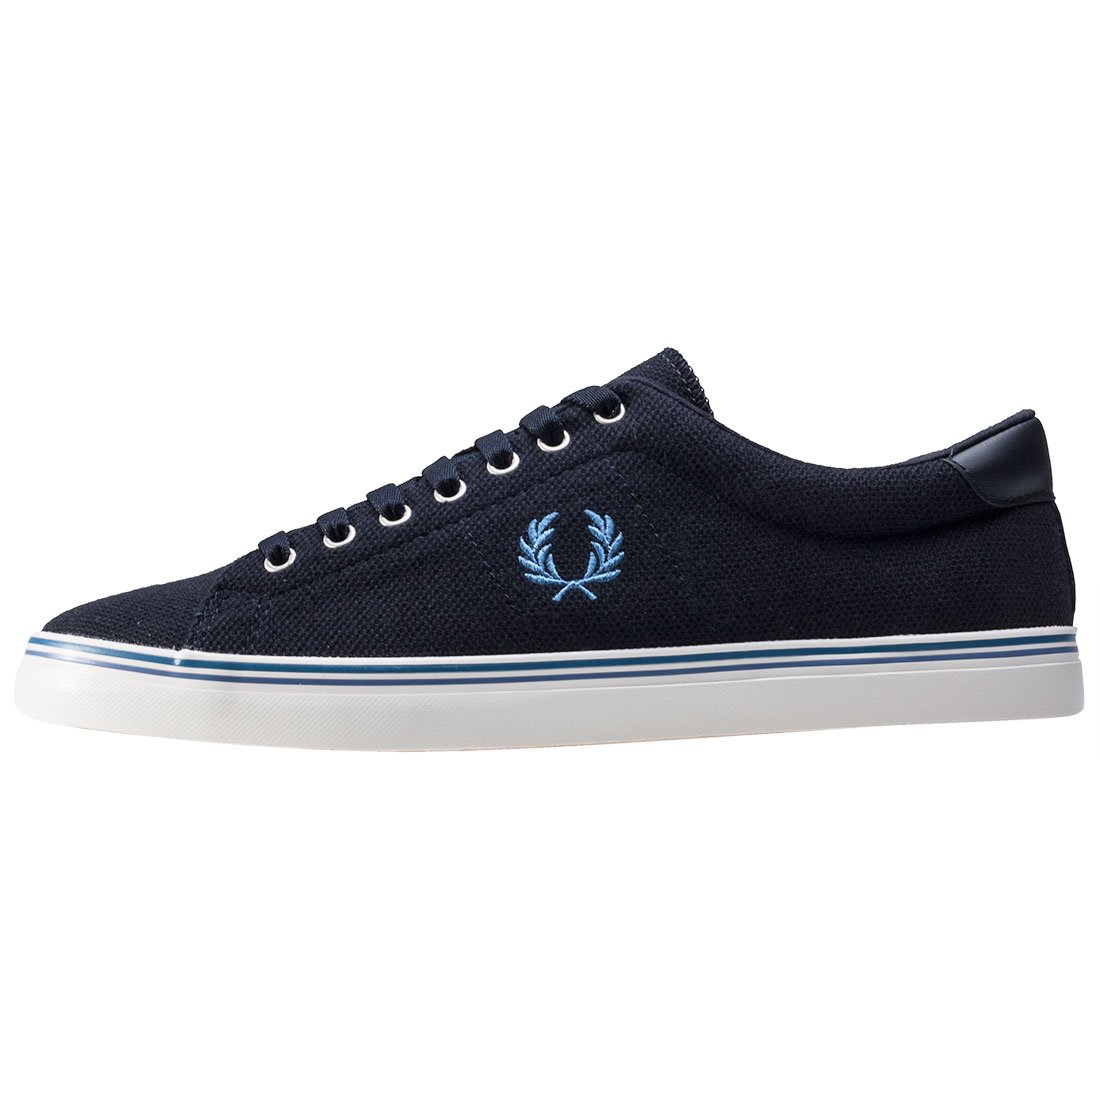 Fred Perry Underspin Oxford Pique Navy B1139608, Basket - 41 EU